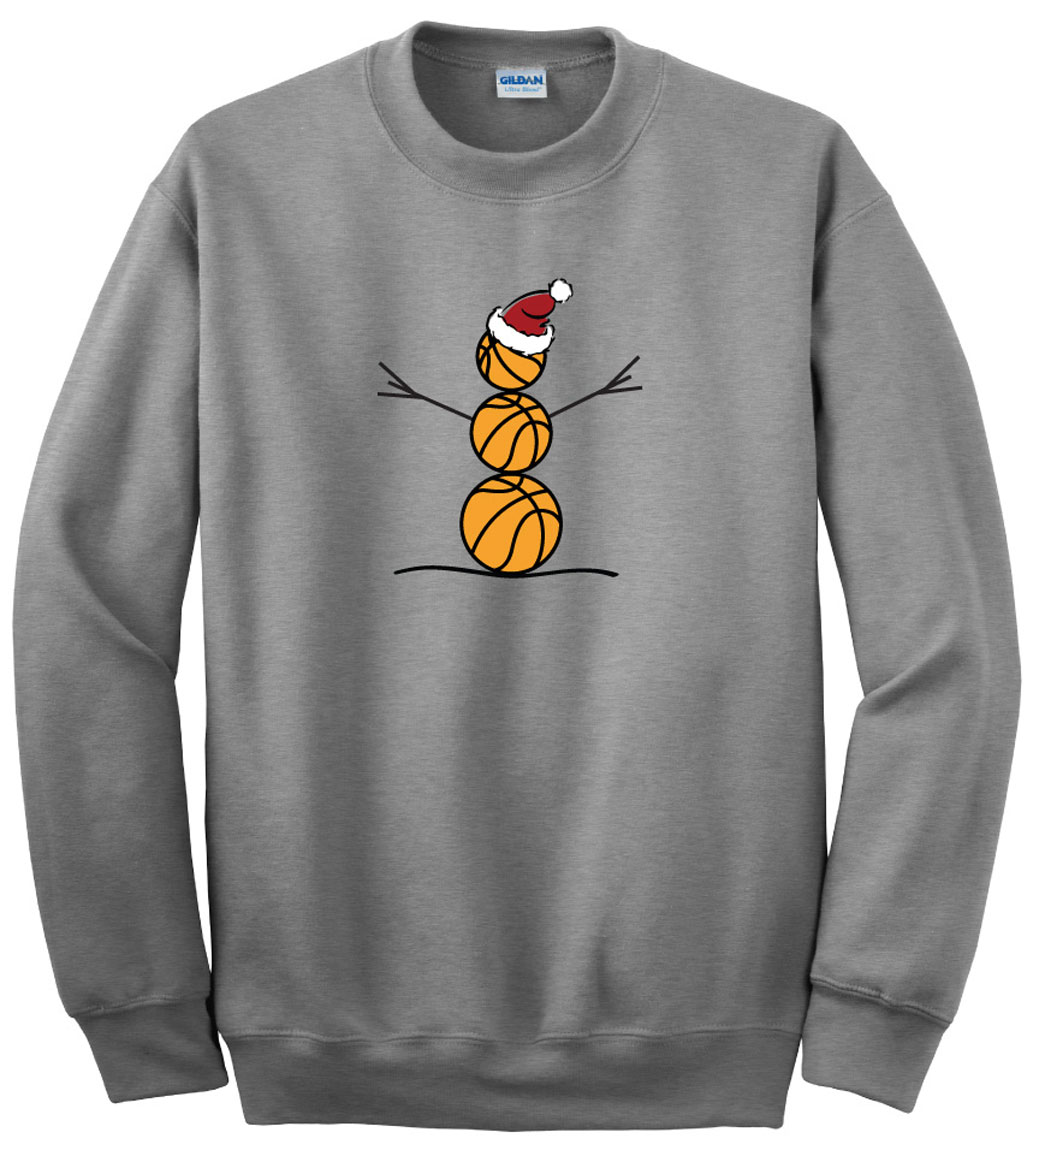 Basketball snowman crewneck sweatshirt in sport gray by Code Four Athletics